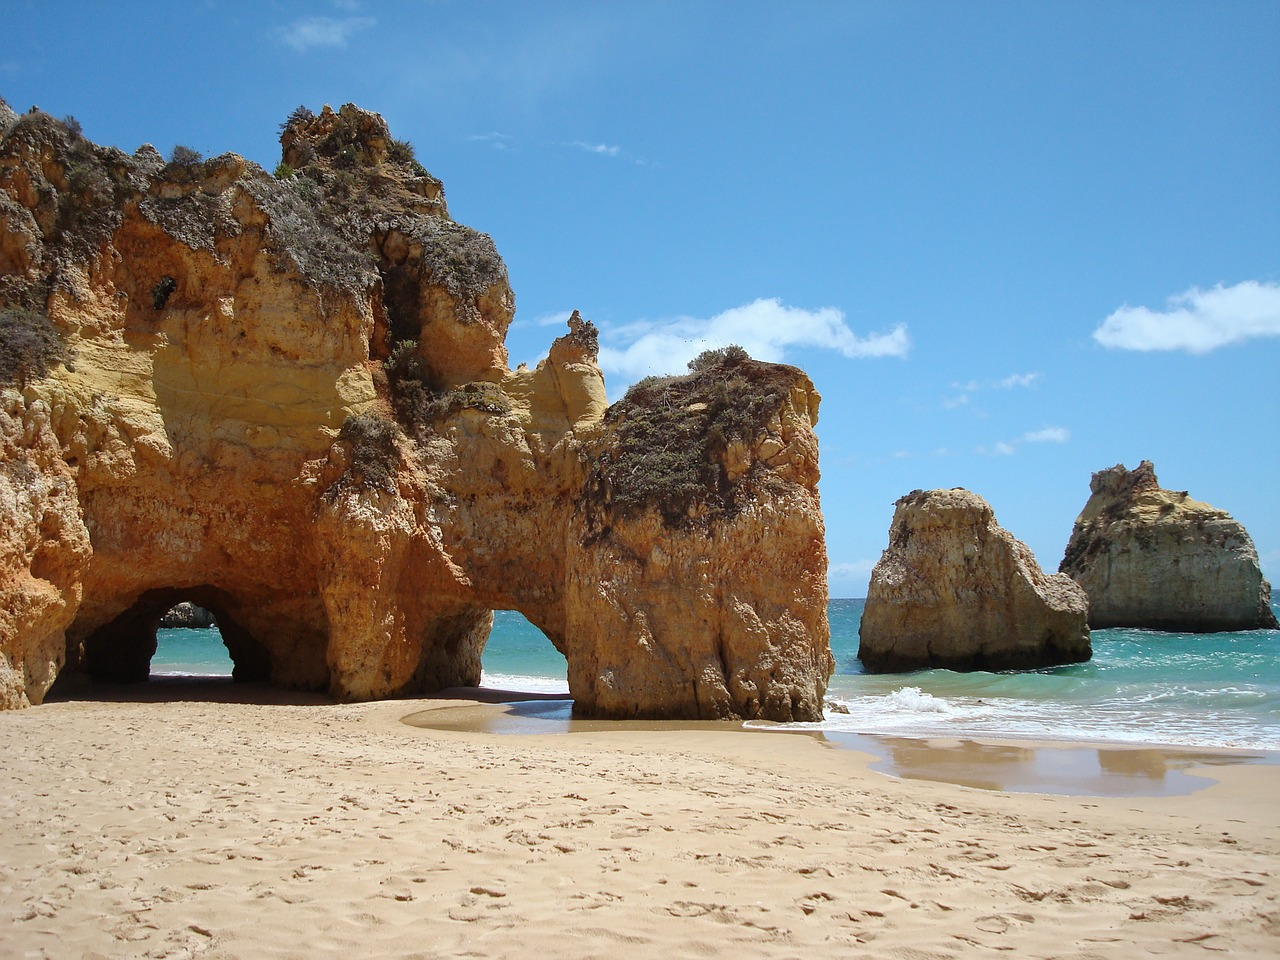 Portugal school vacations and public holidays 2020